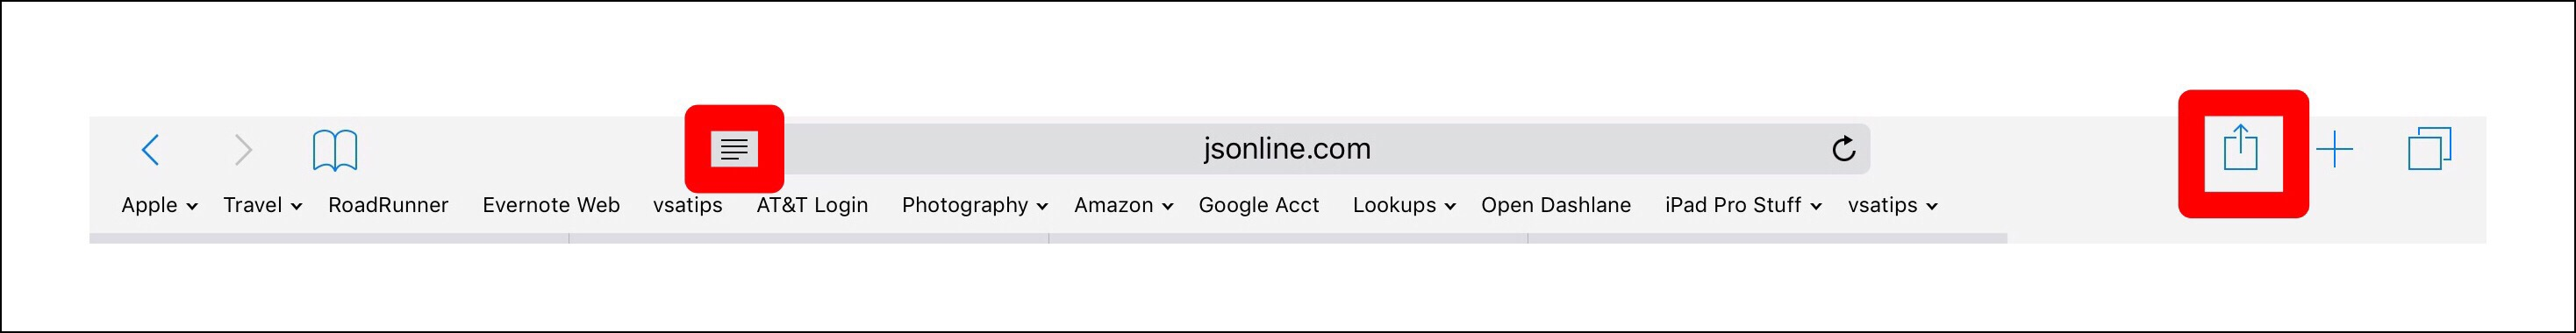 URL bar with Rewder mode lines